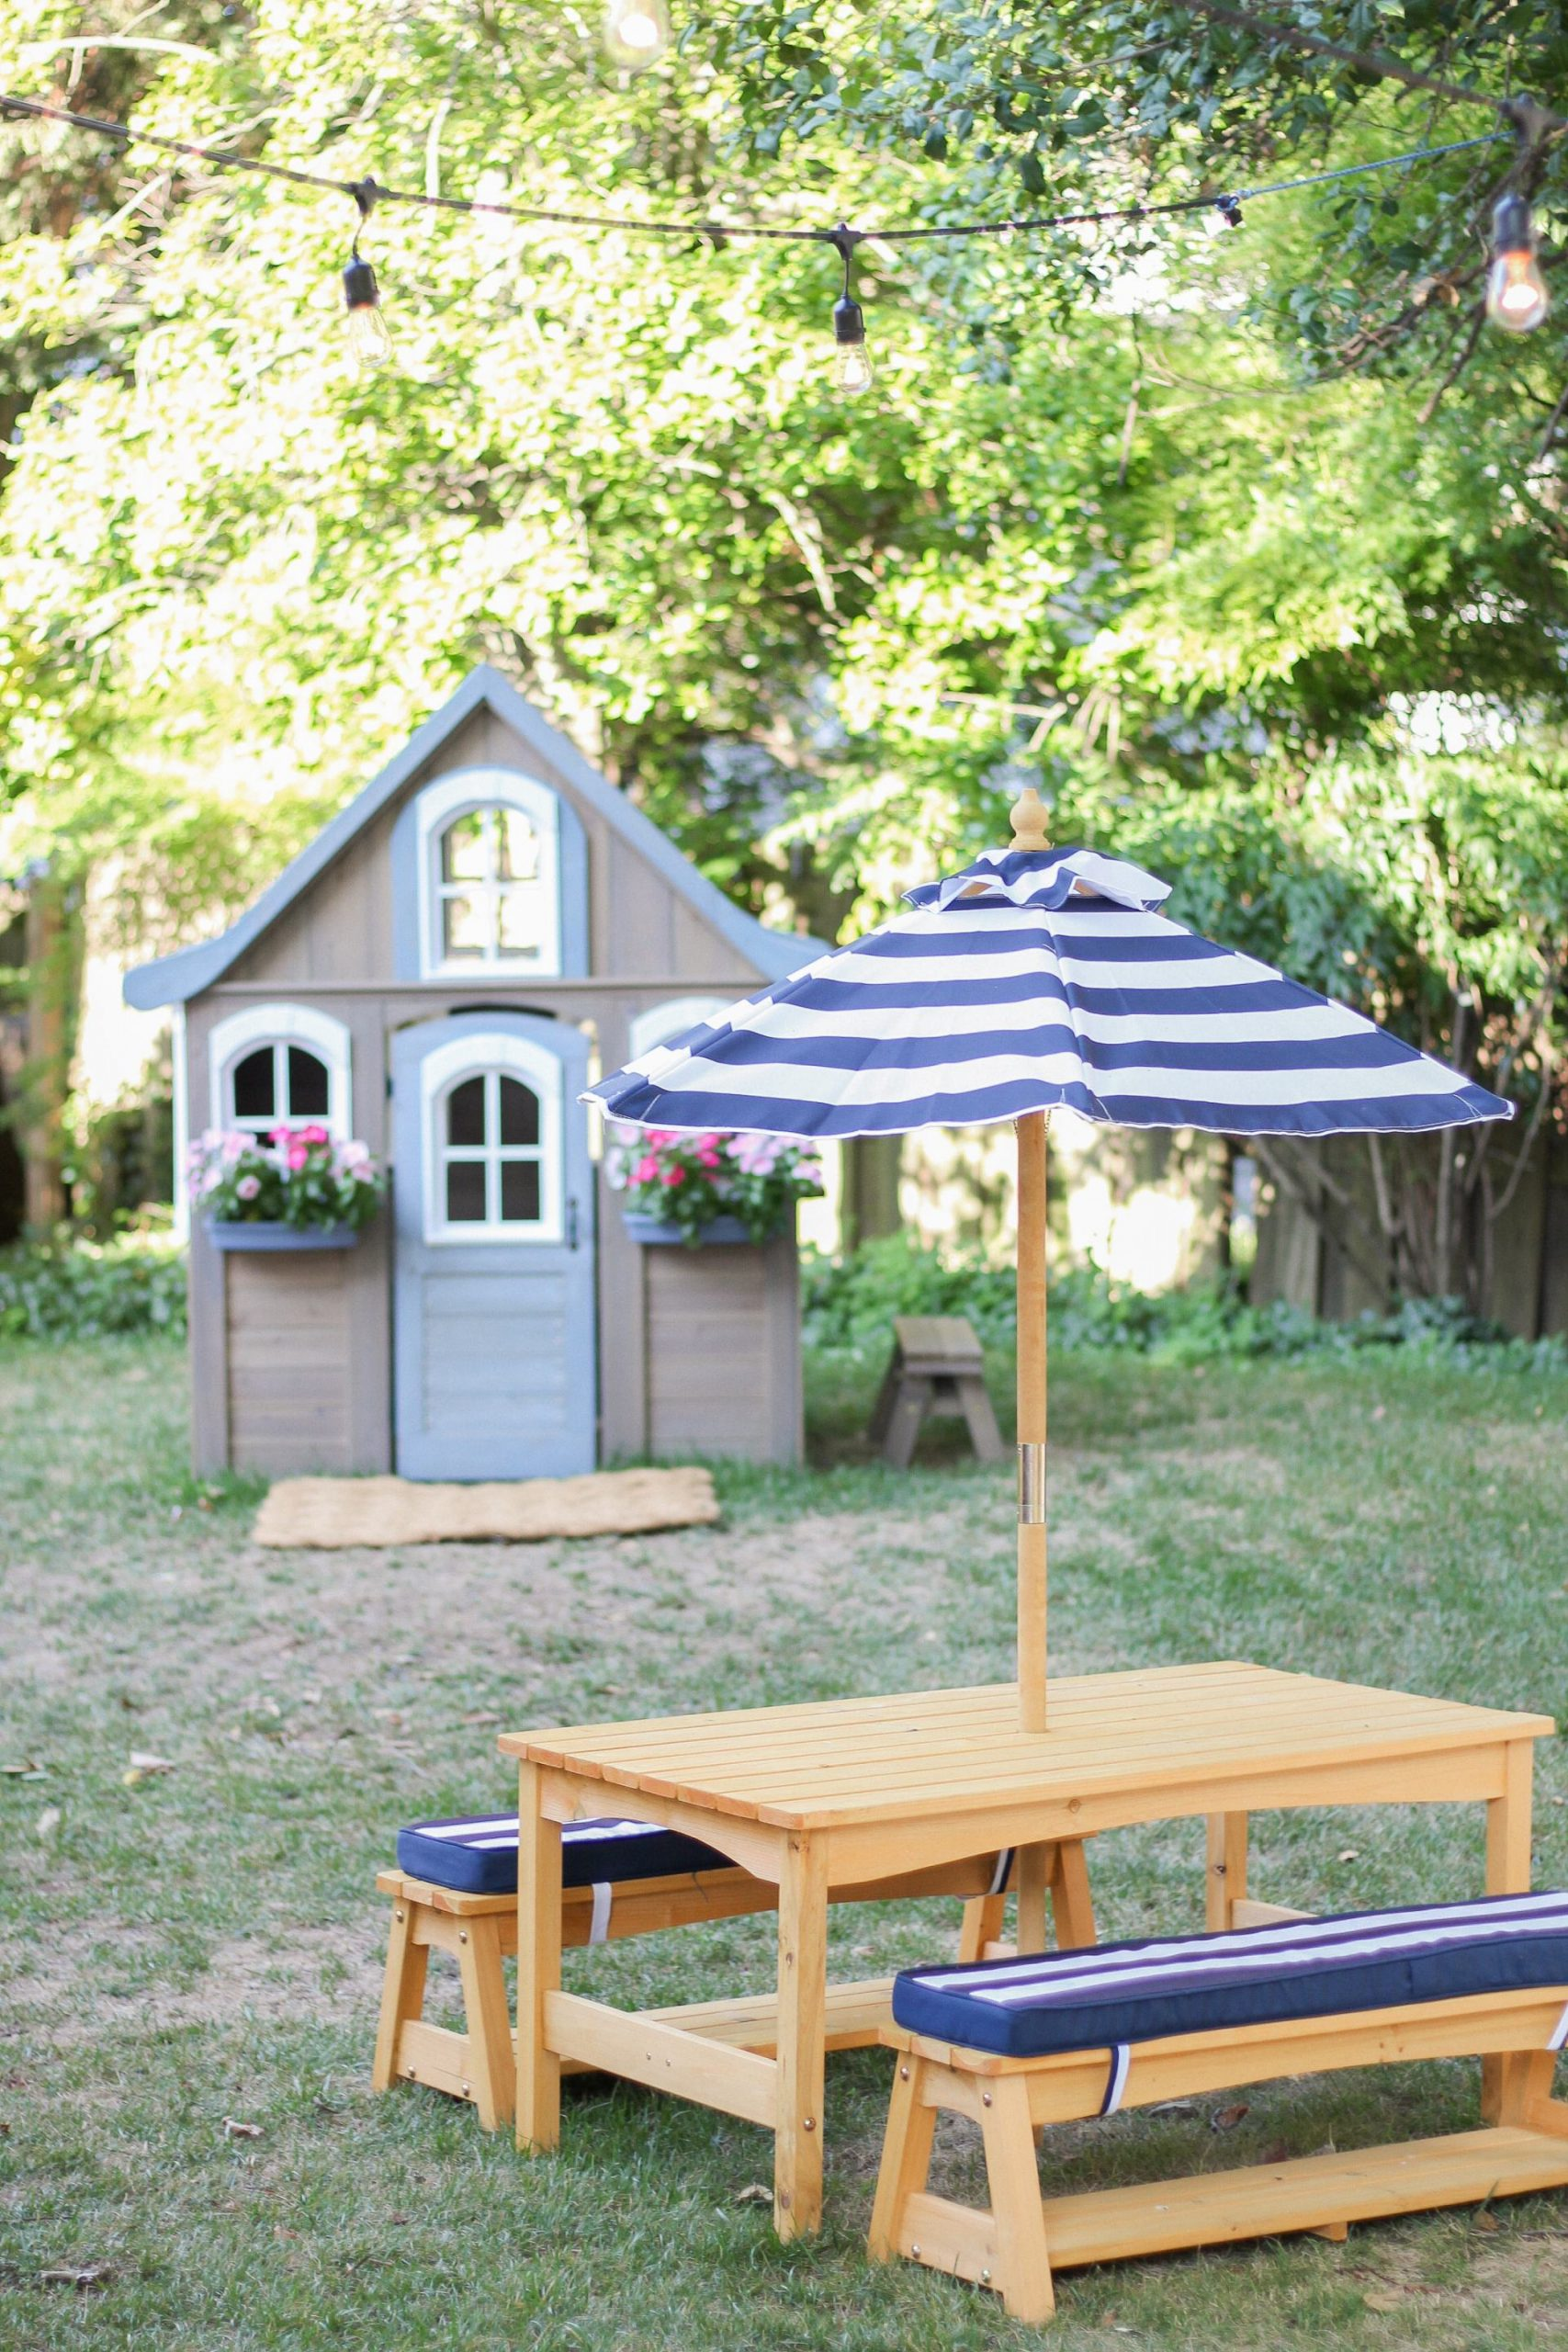 kids picnic table with striped umbrella and cushions and wooden playhouse